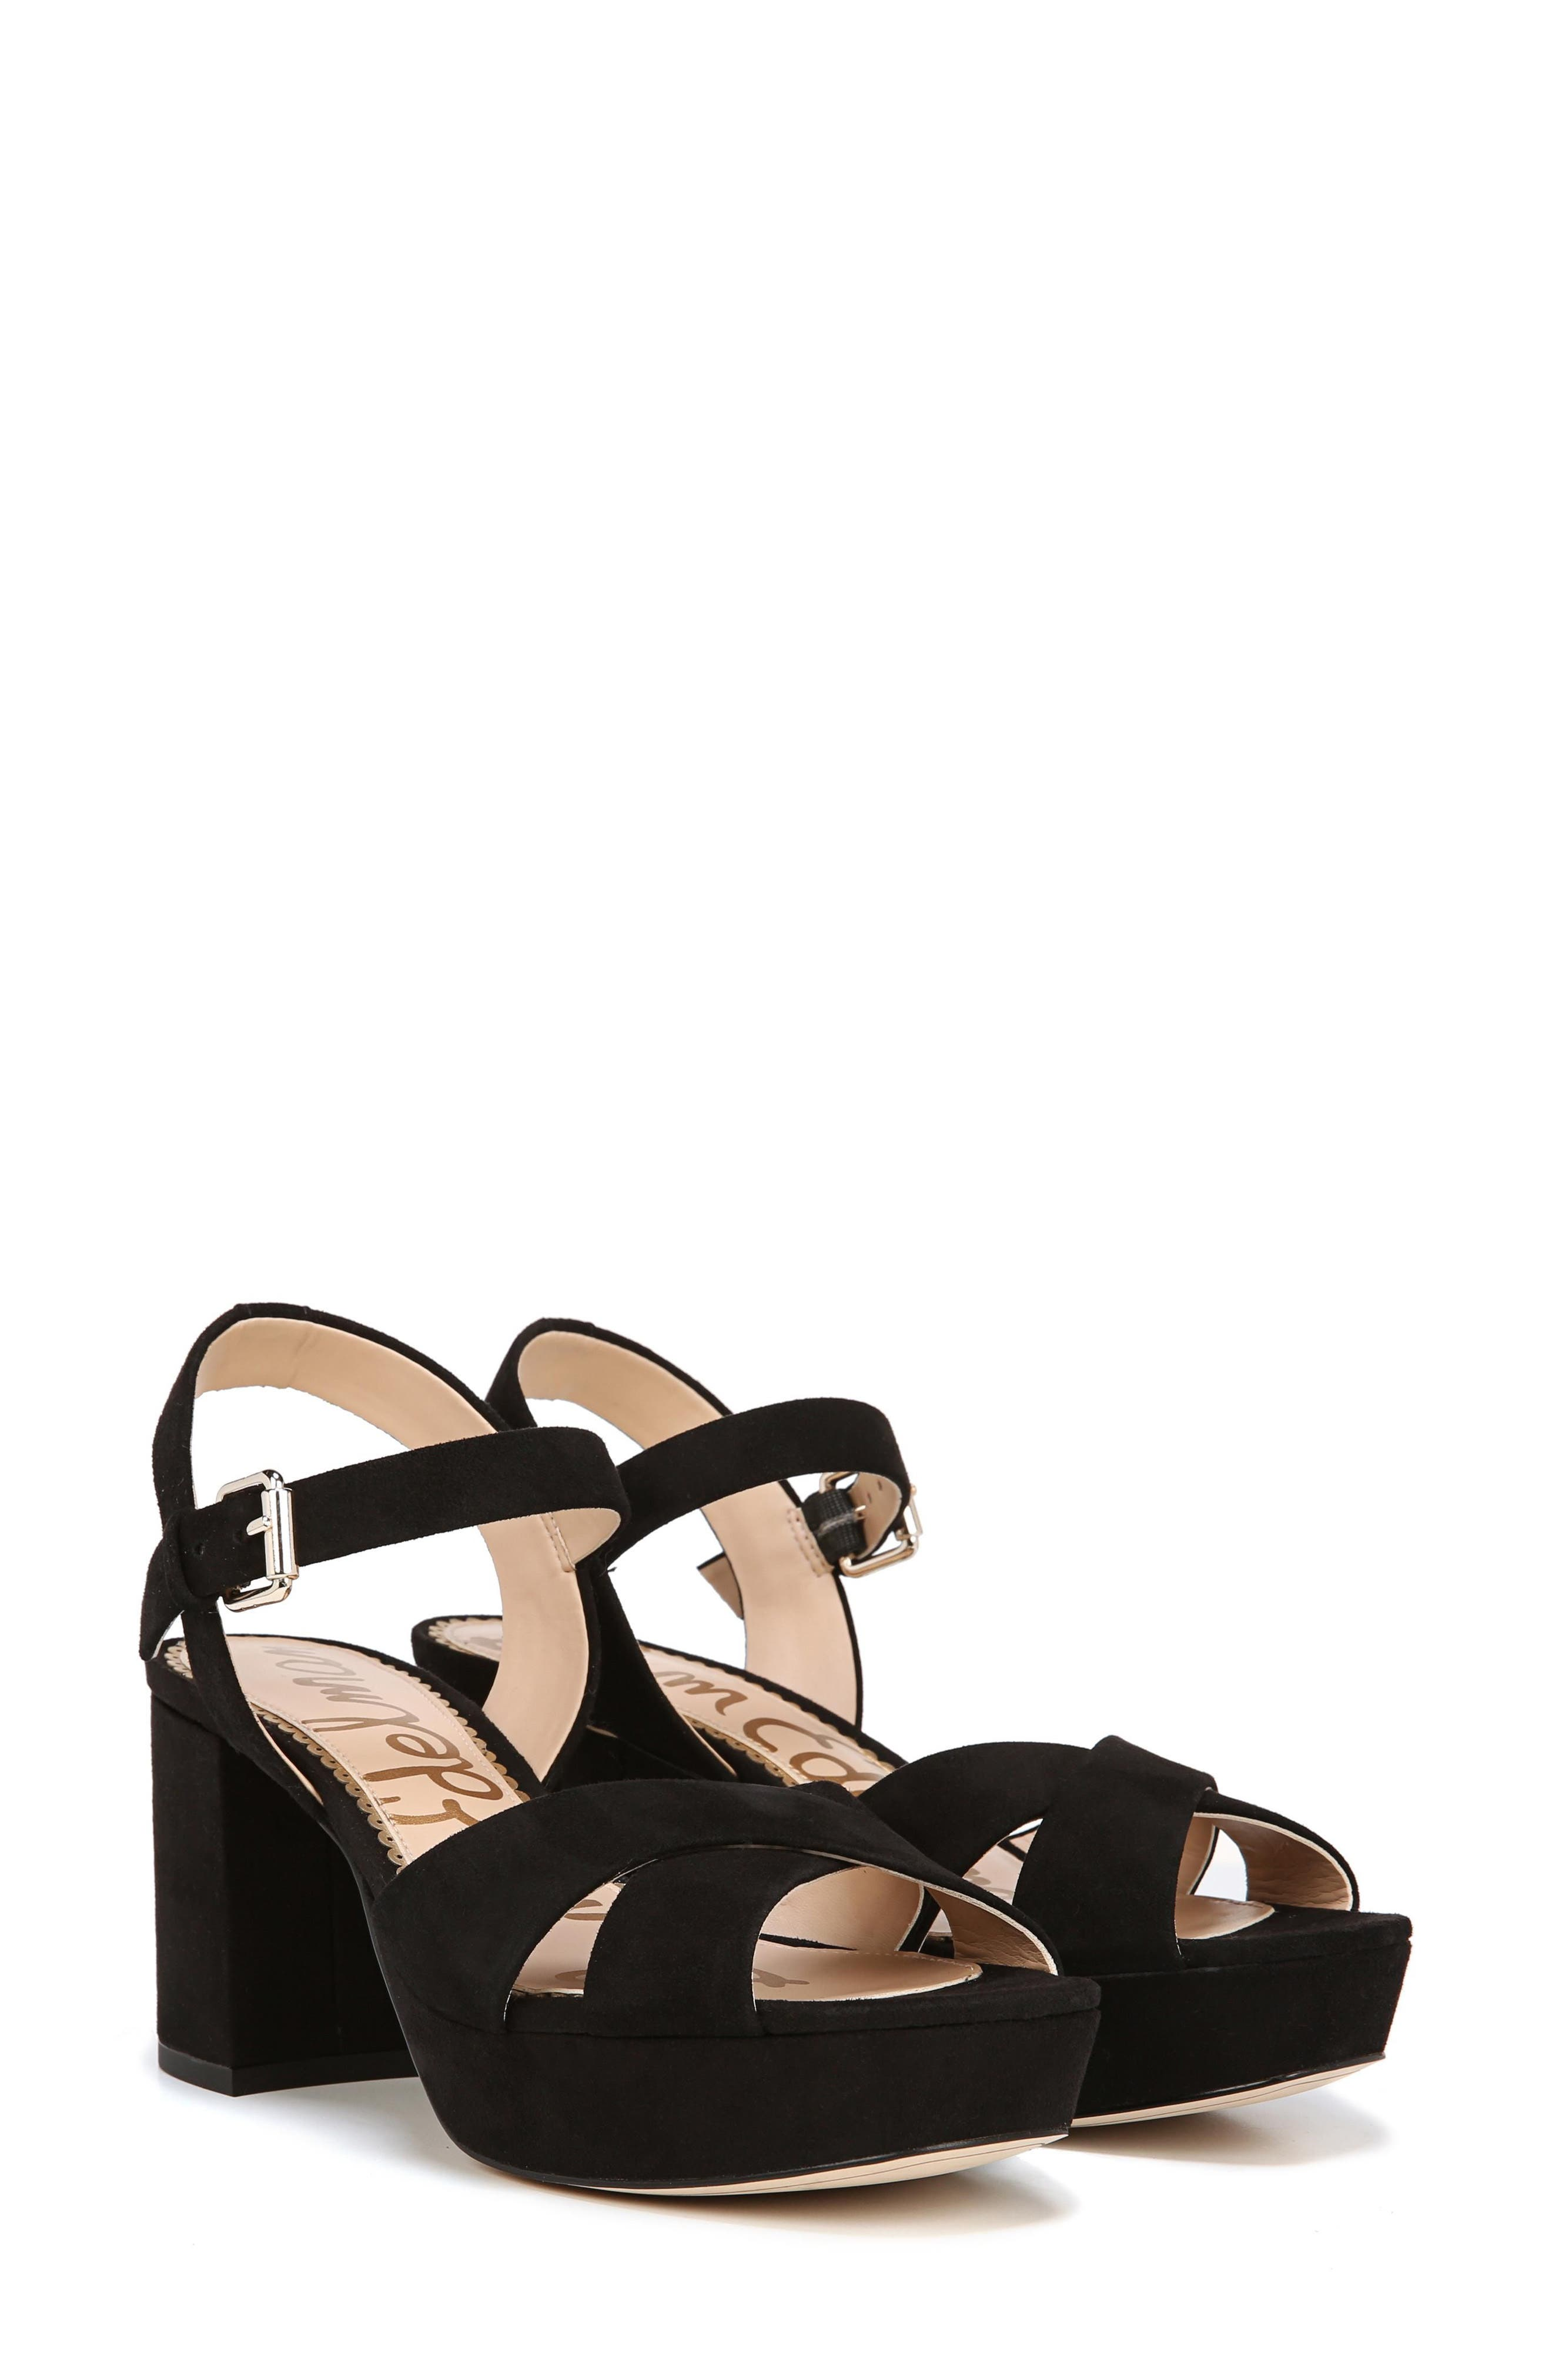 Jolene Platform Sandal,                             Alternate thumbnail 7, color,                             BLACK SUEDE